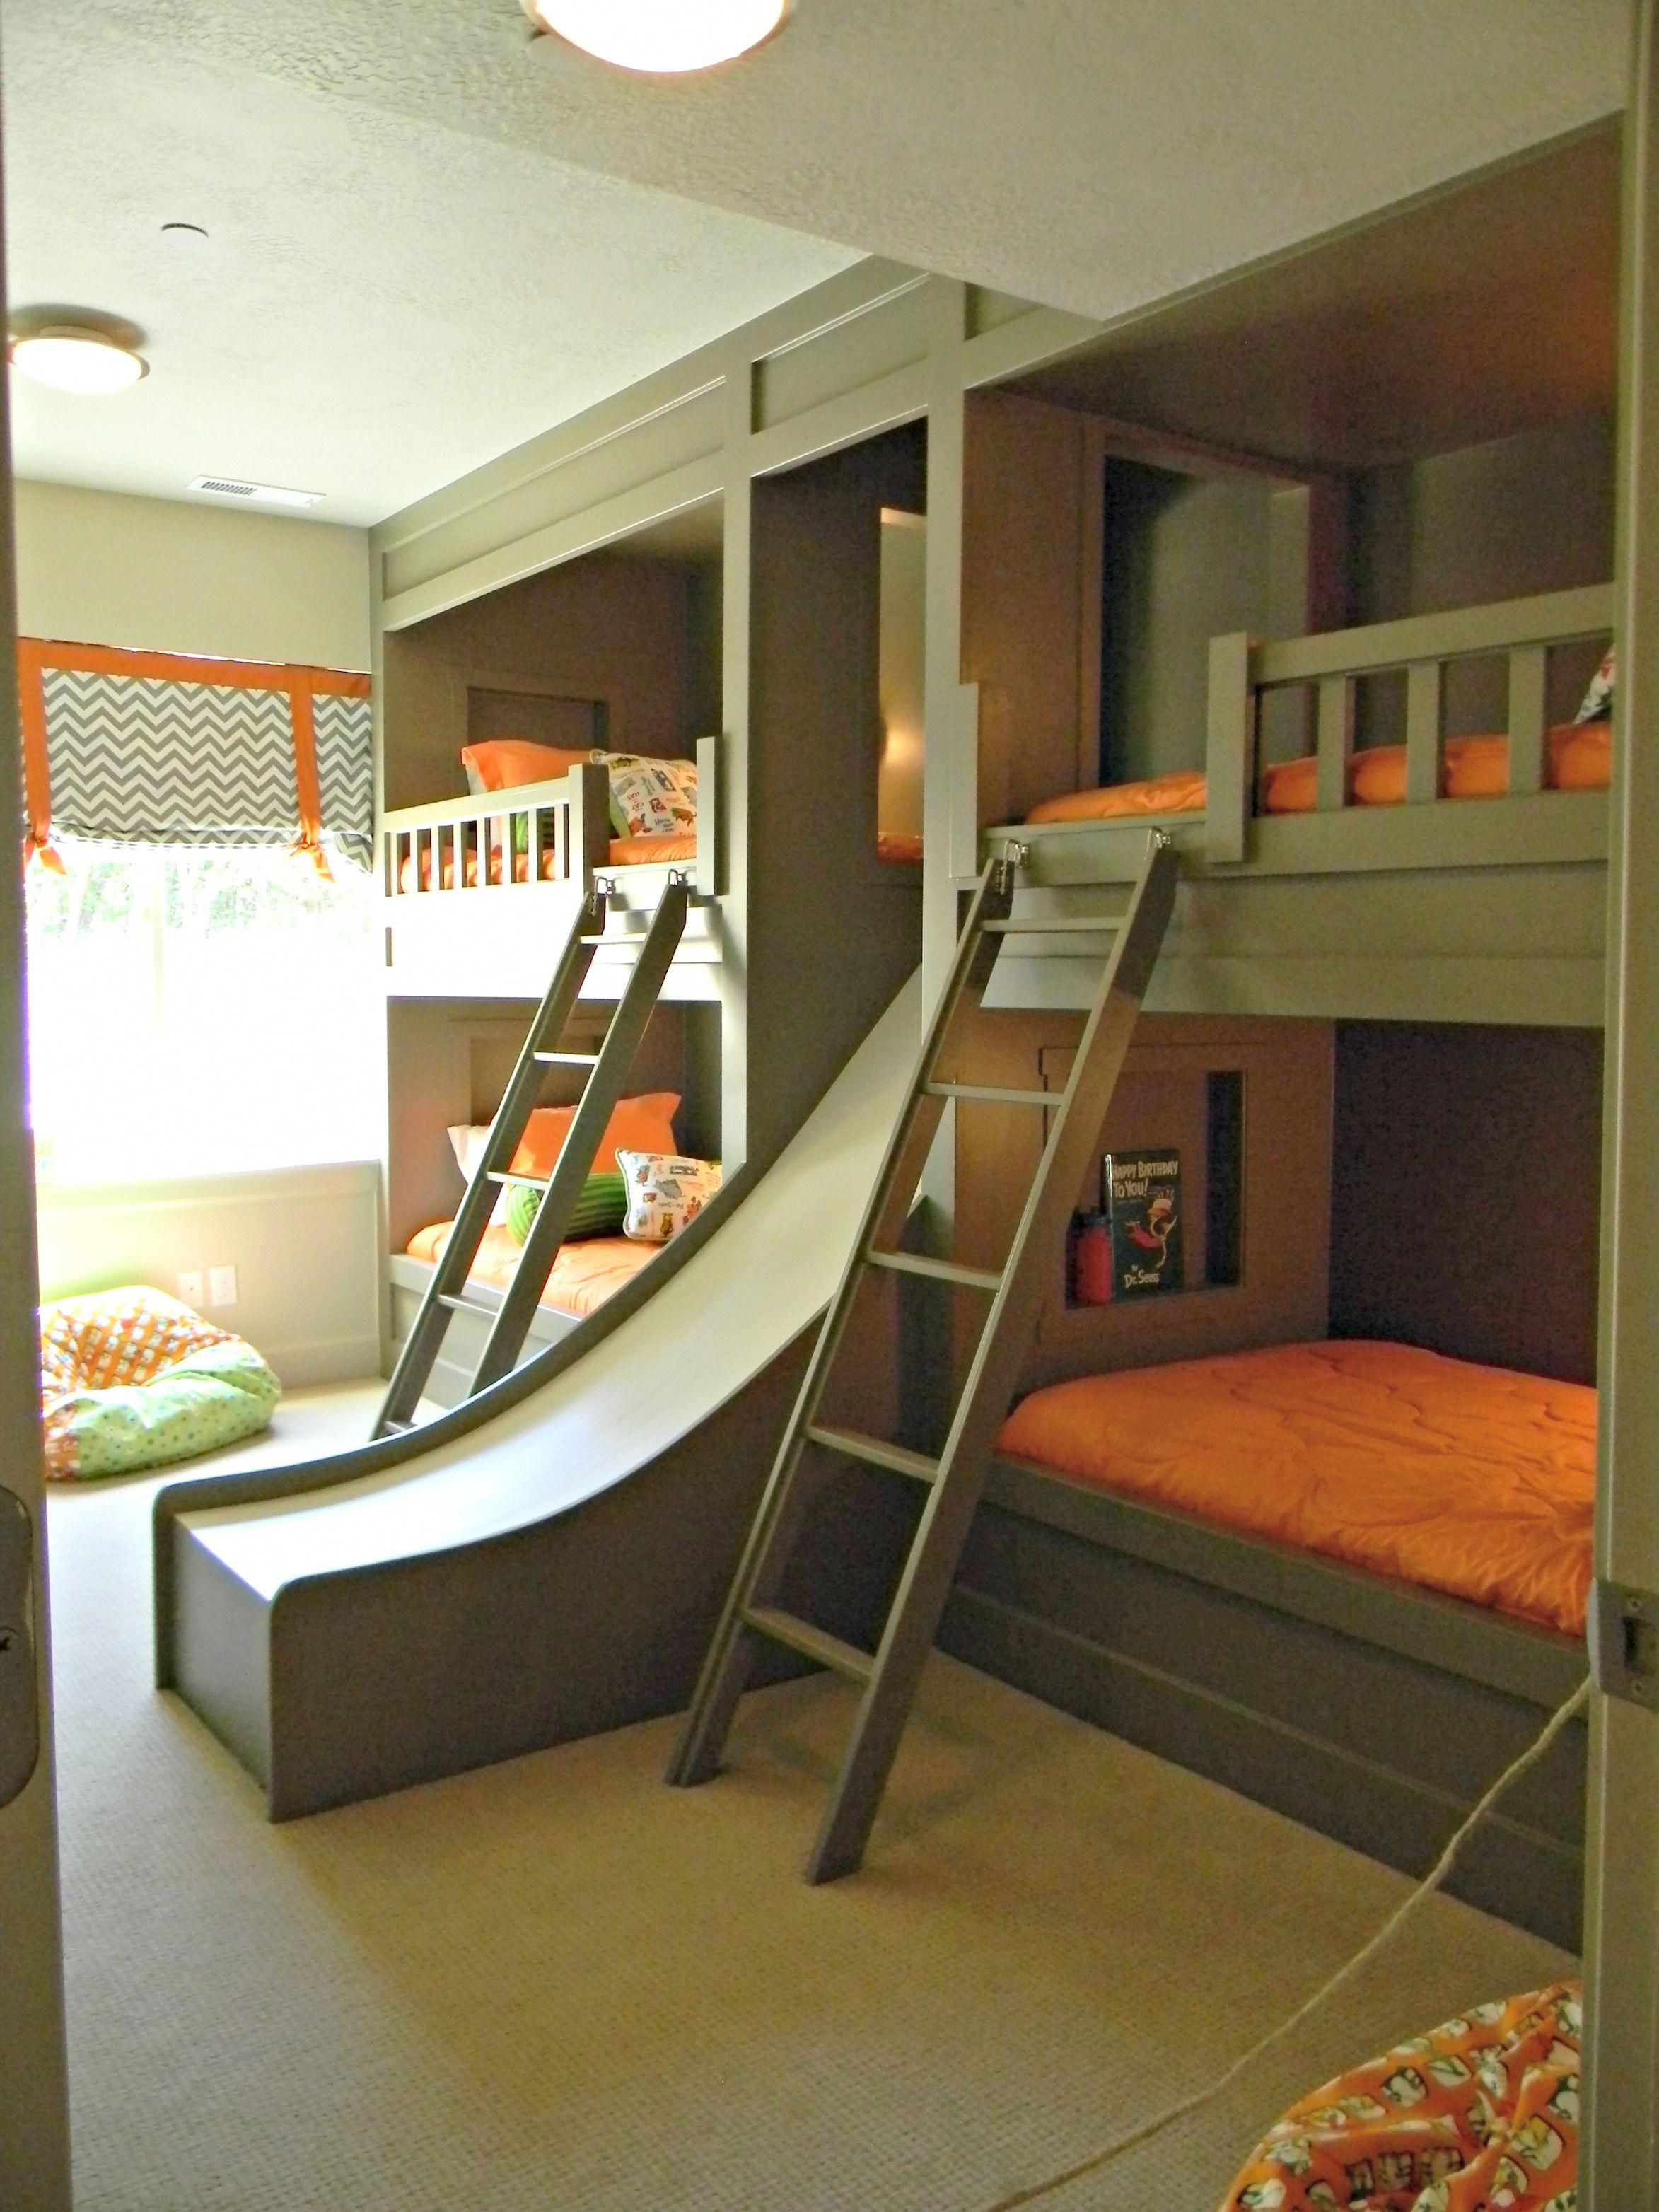 double bunk bed with slide on 28 unbelievable bunk beds max and lily bunk bed american girl doll furnitures furnituresale bunkbeds cool boys room home bedroom bunk bed with slide bunk beds max and lily bunk bed